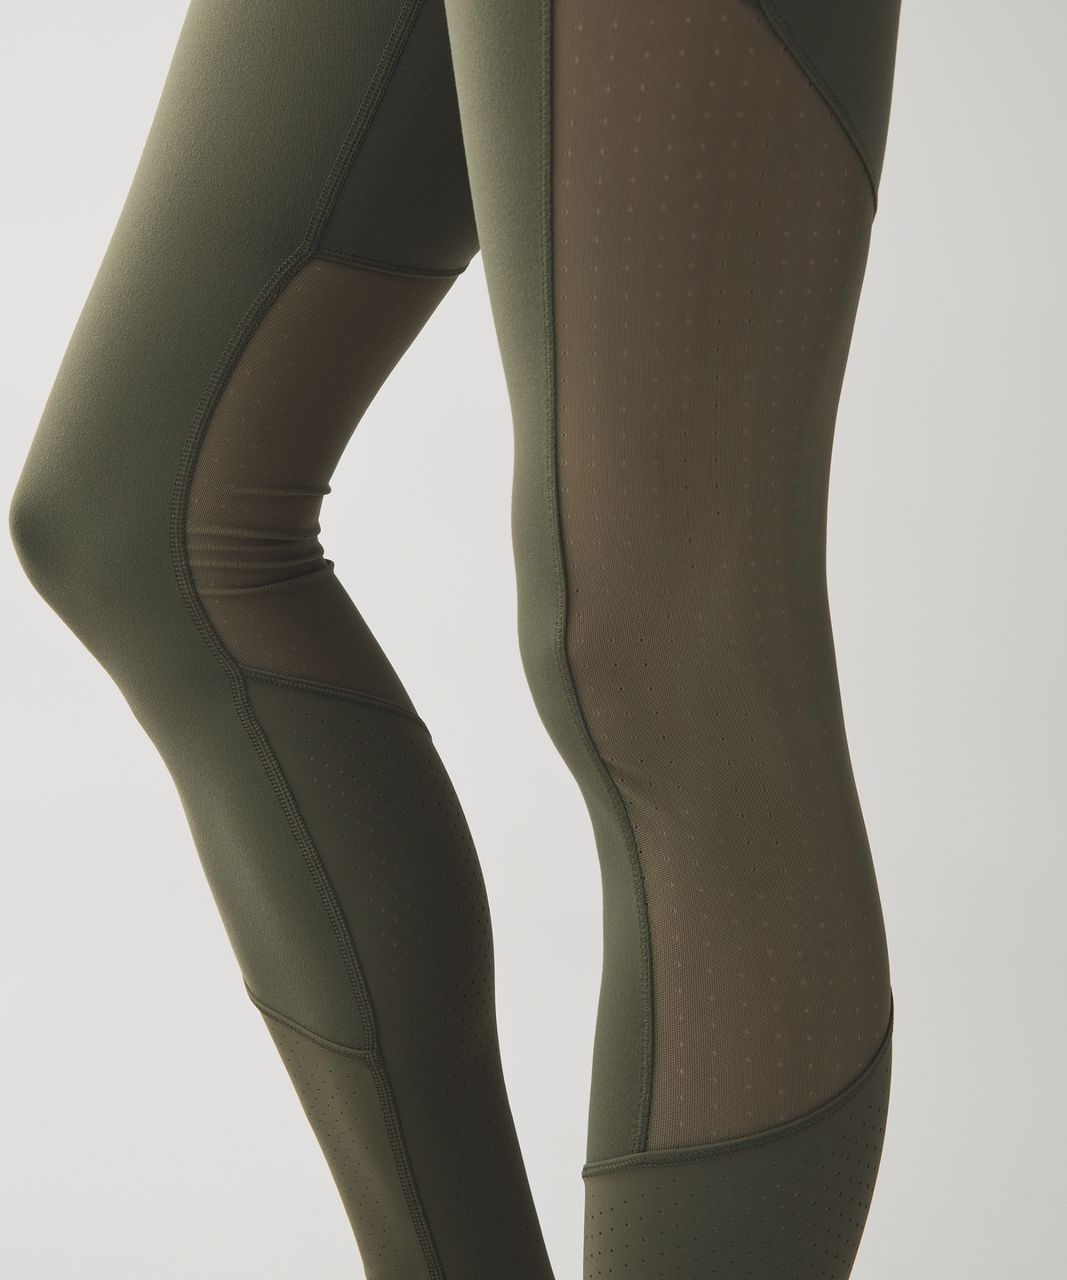 Lululemon Barre Star Pant *Full-On Luon - Fatigue Green